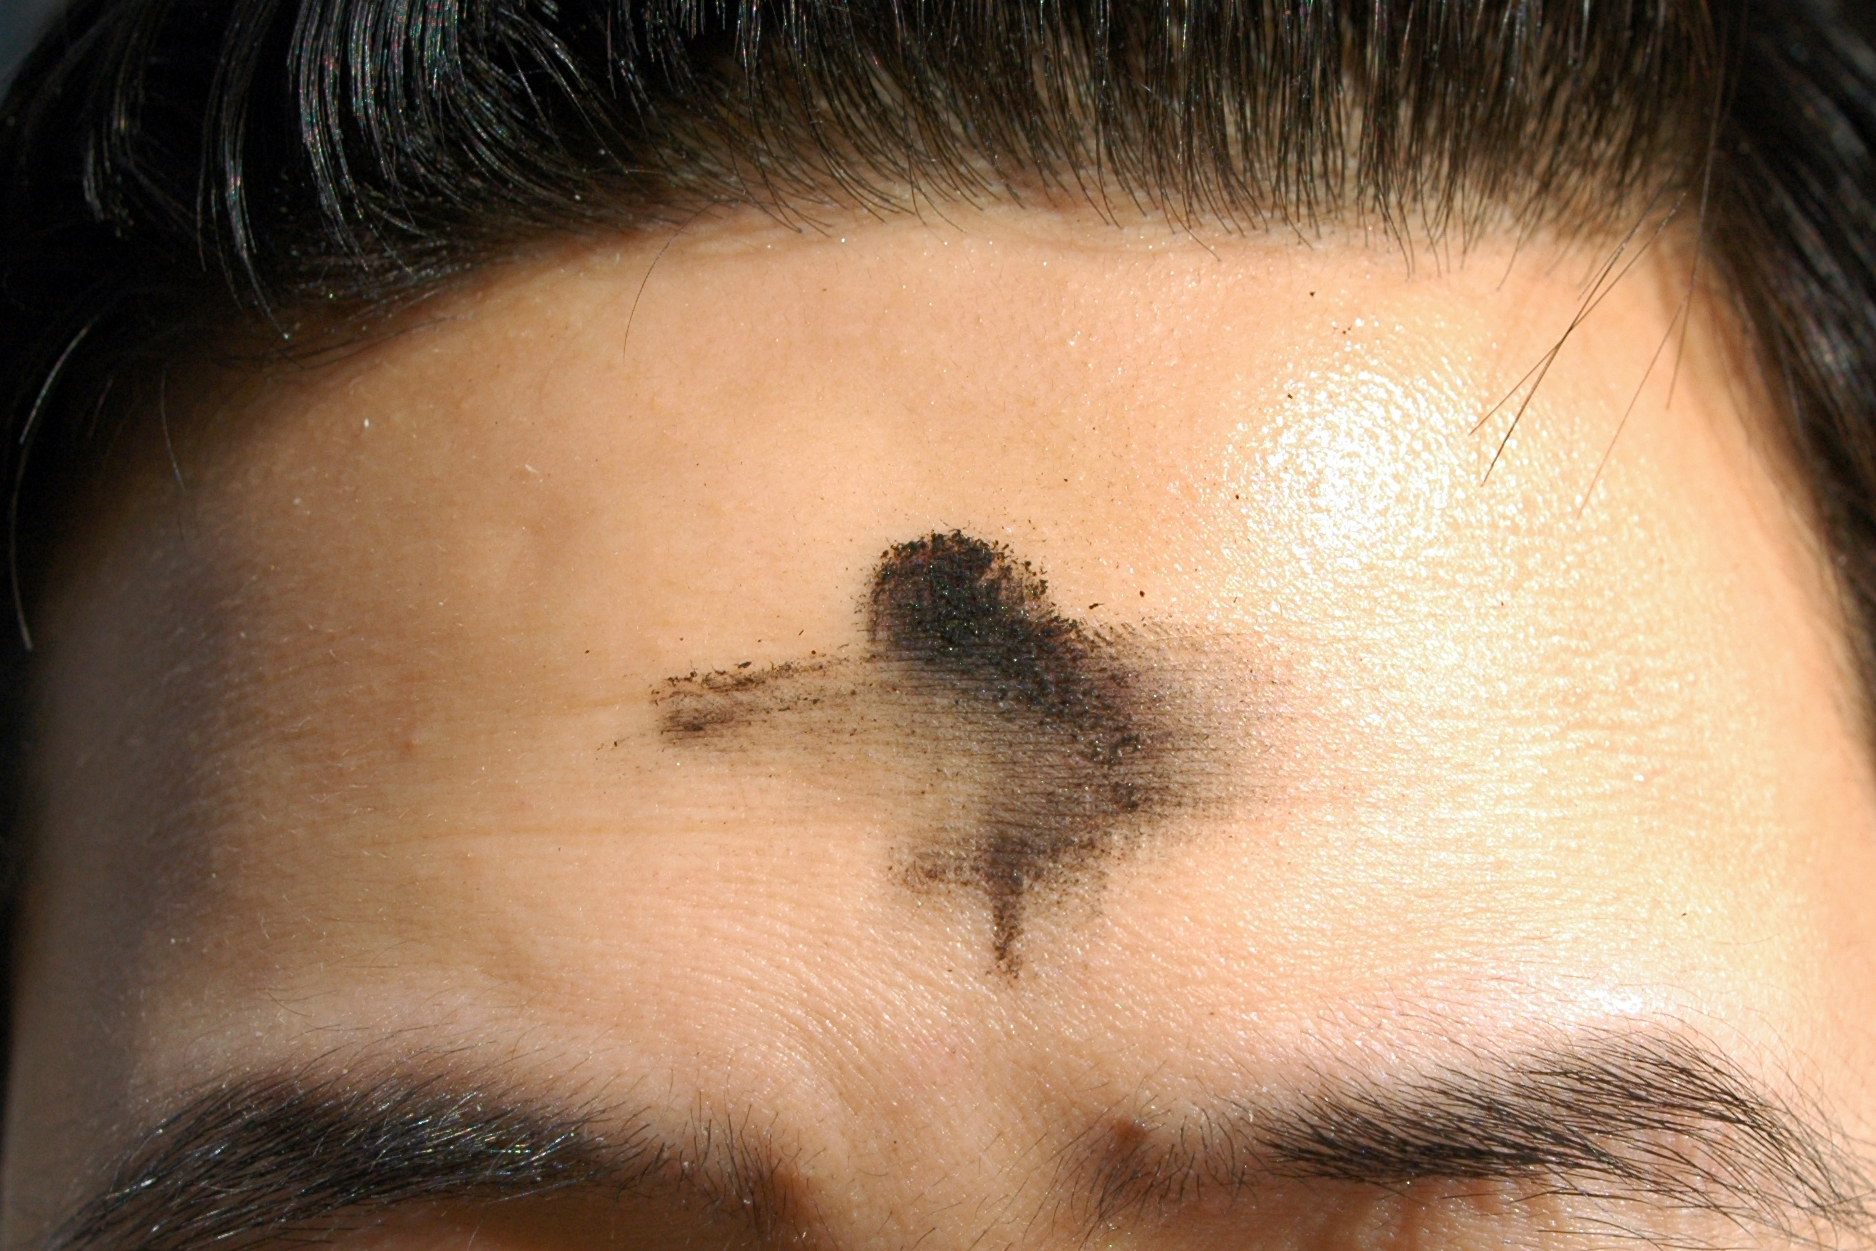 Christians across the world remember Ash Wednesday on Feb. 18, 2015. What other religious face markings exist? And why are they so prominent?